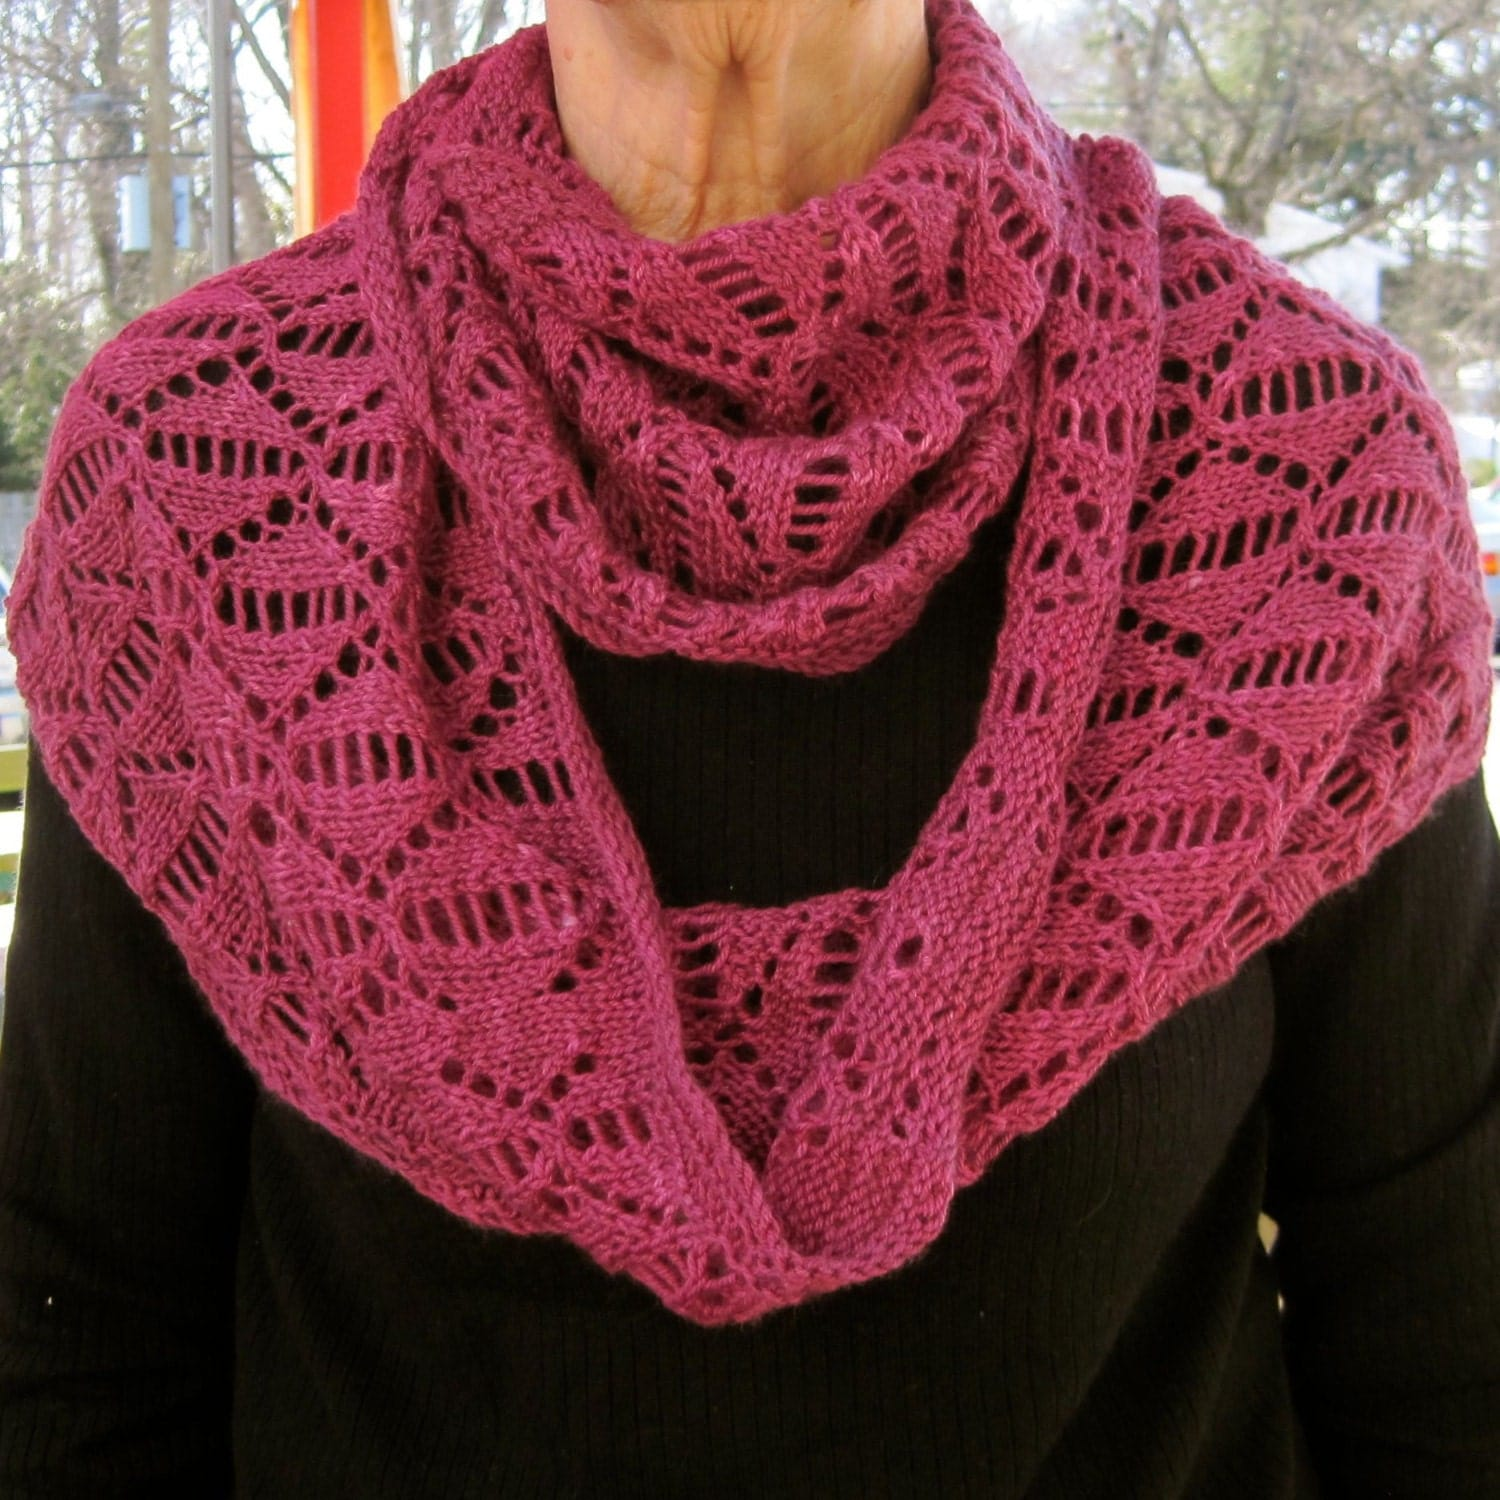 Knit Cowl Pattern: Dreaming of Spring Lace by WearableArtEmporium